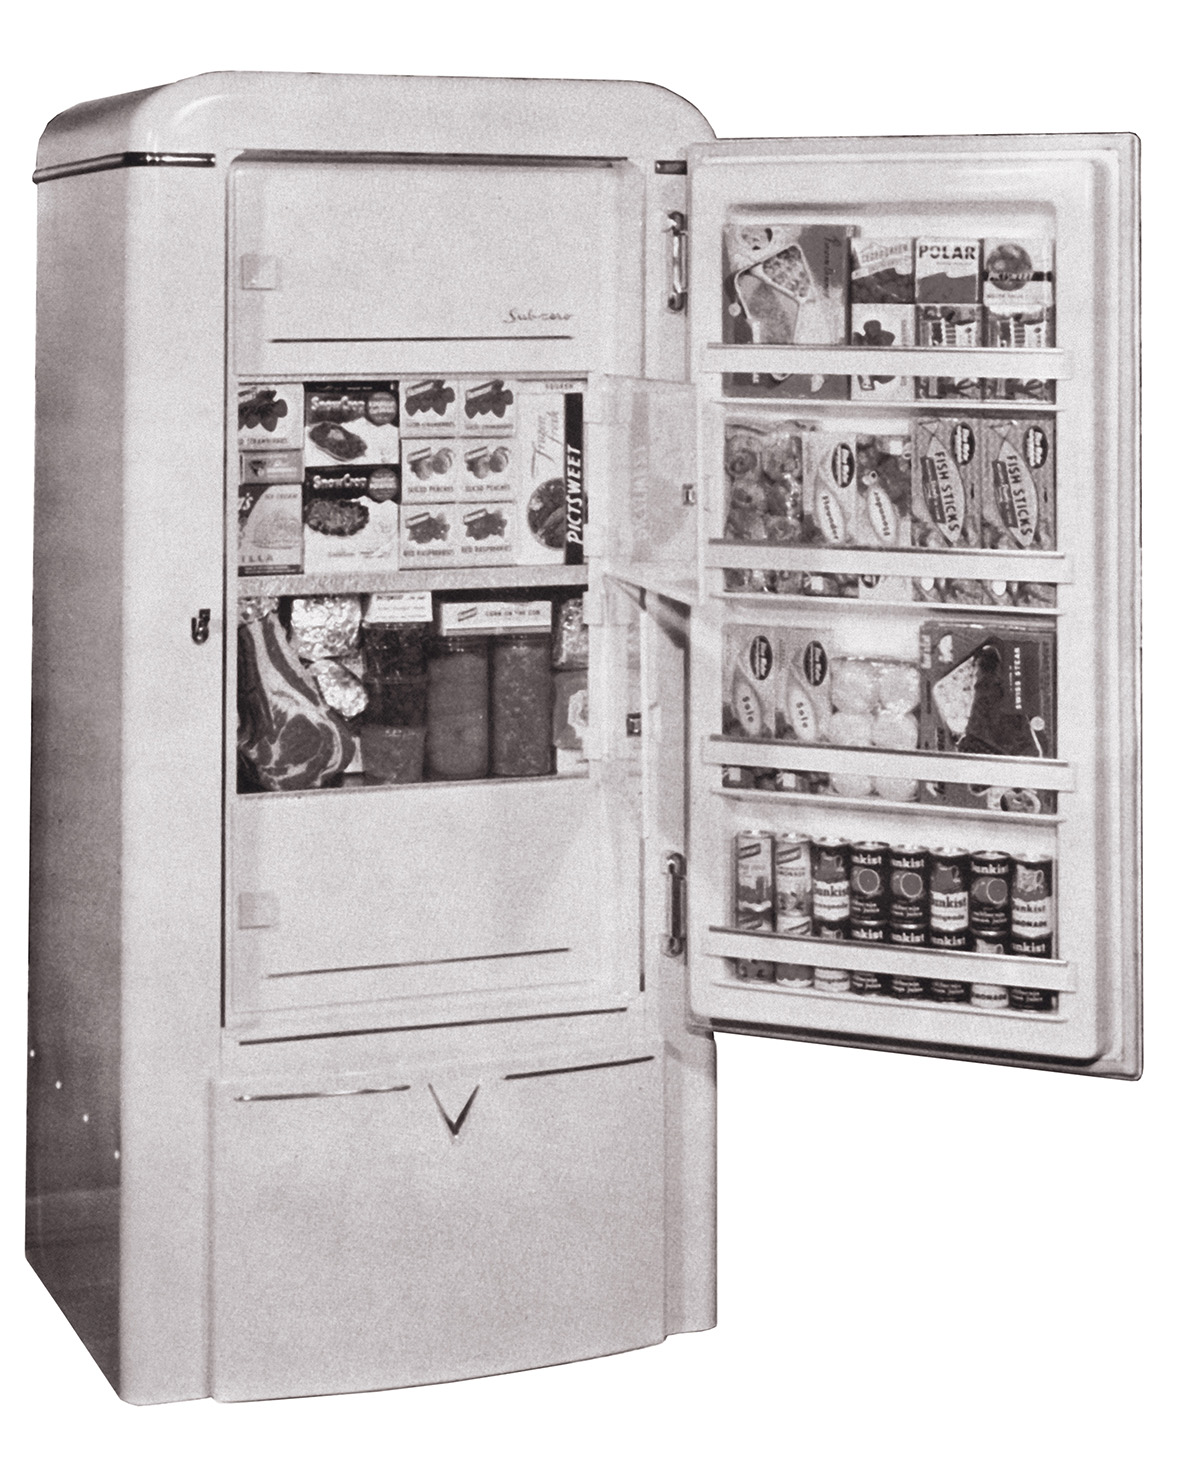 Classic Sub-Zero model 20D Refrigerator and Freezer